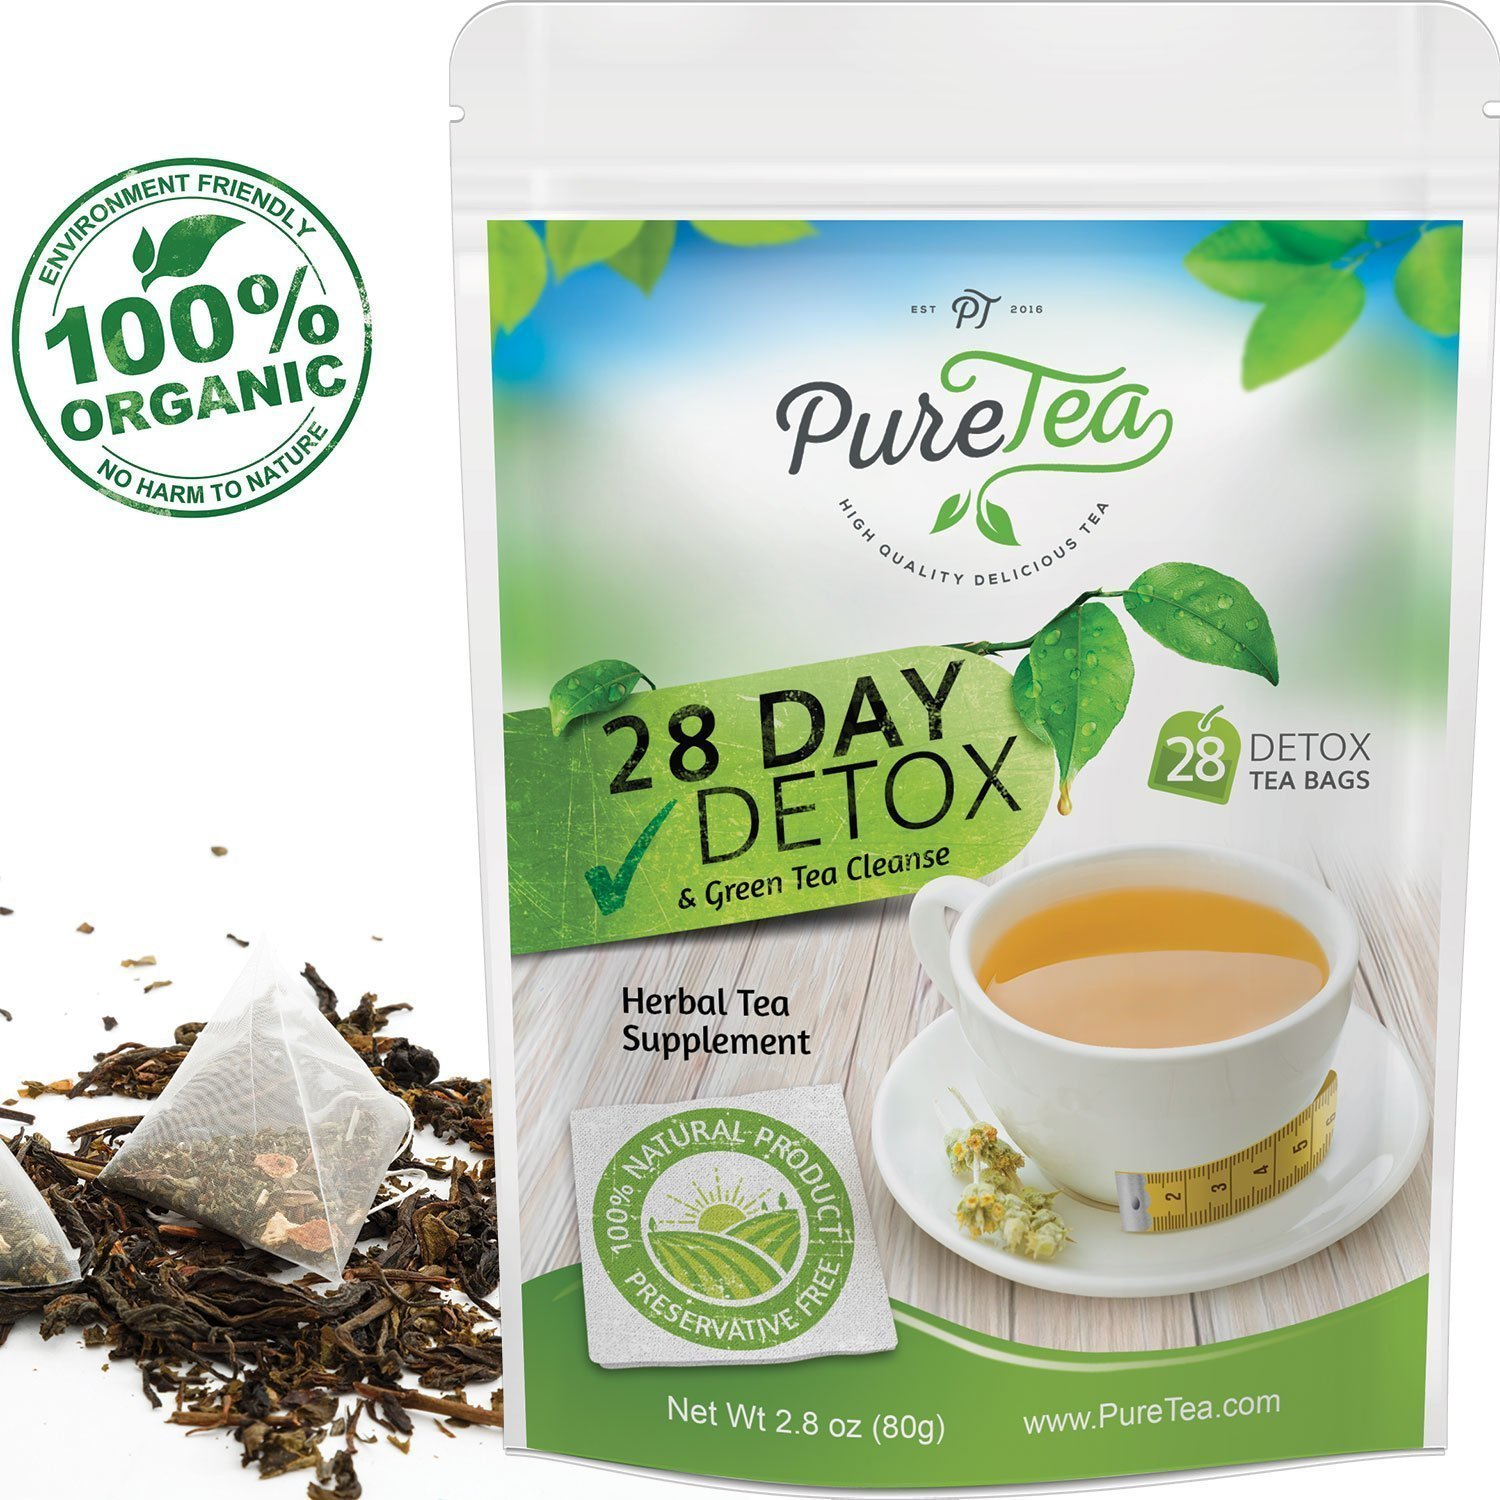 Slimming tea: reviews and safe composition of the product 22